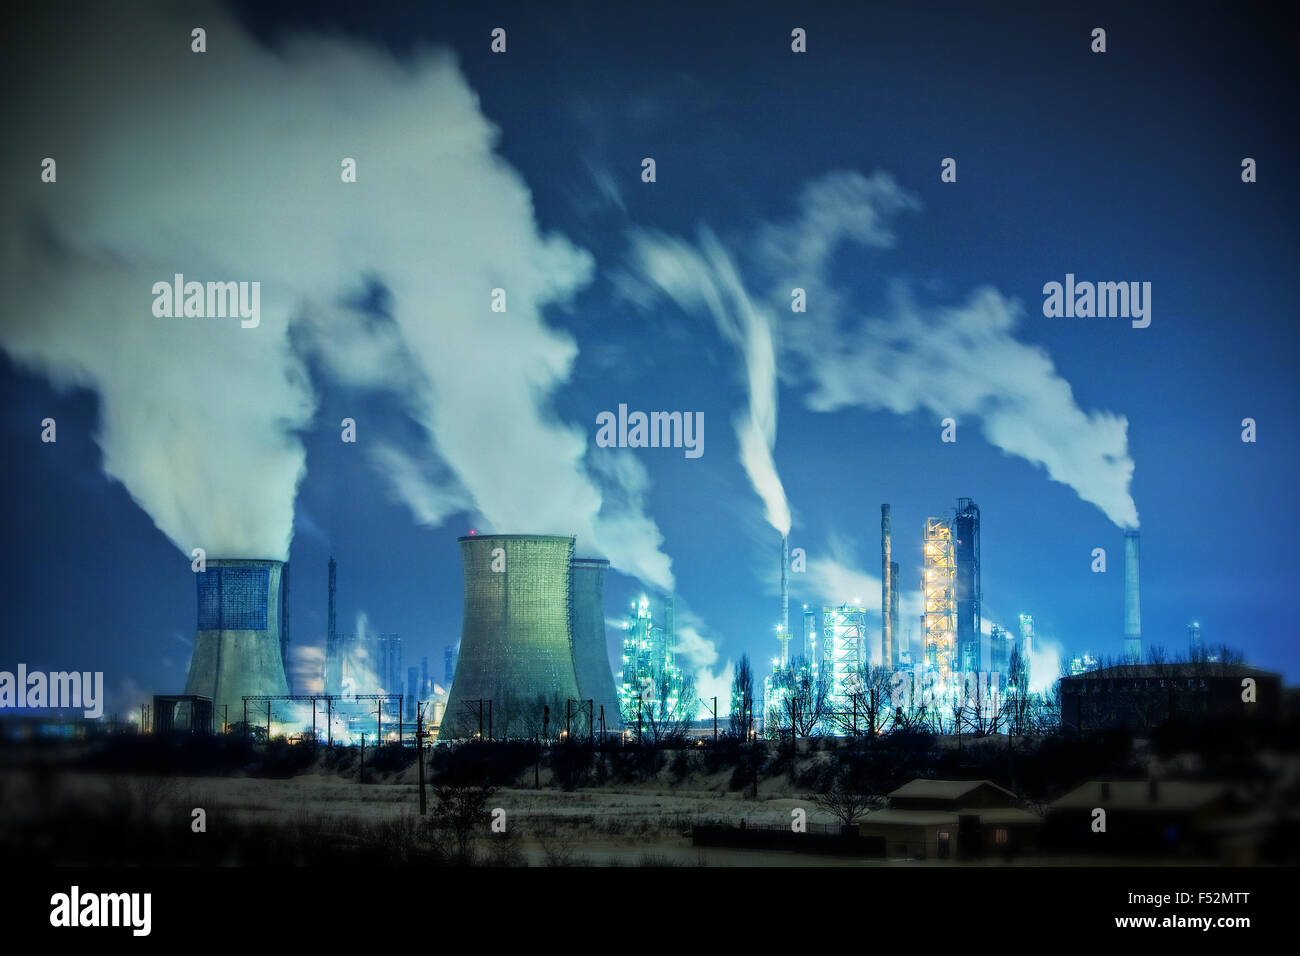 A Classic Example Of How Heavy Industry Pollute Our Atmosphere - Stock Image